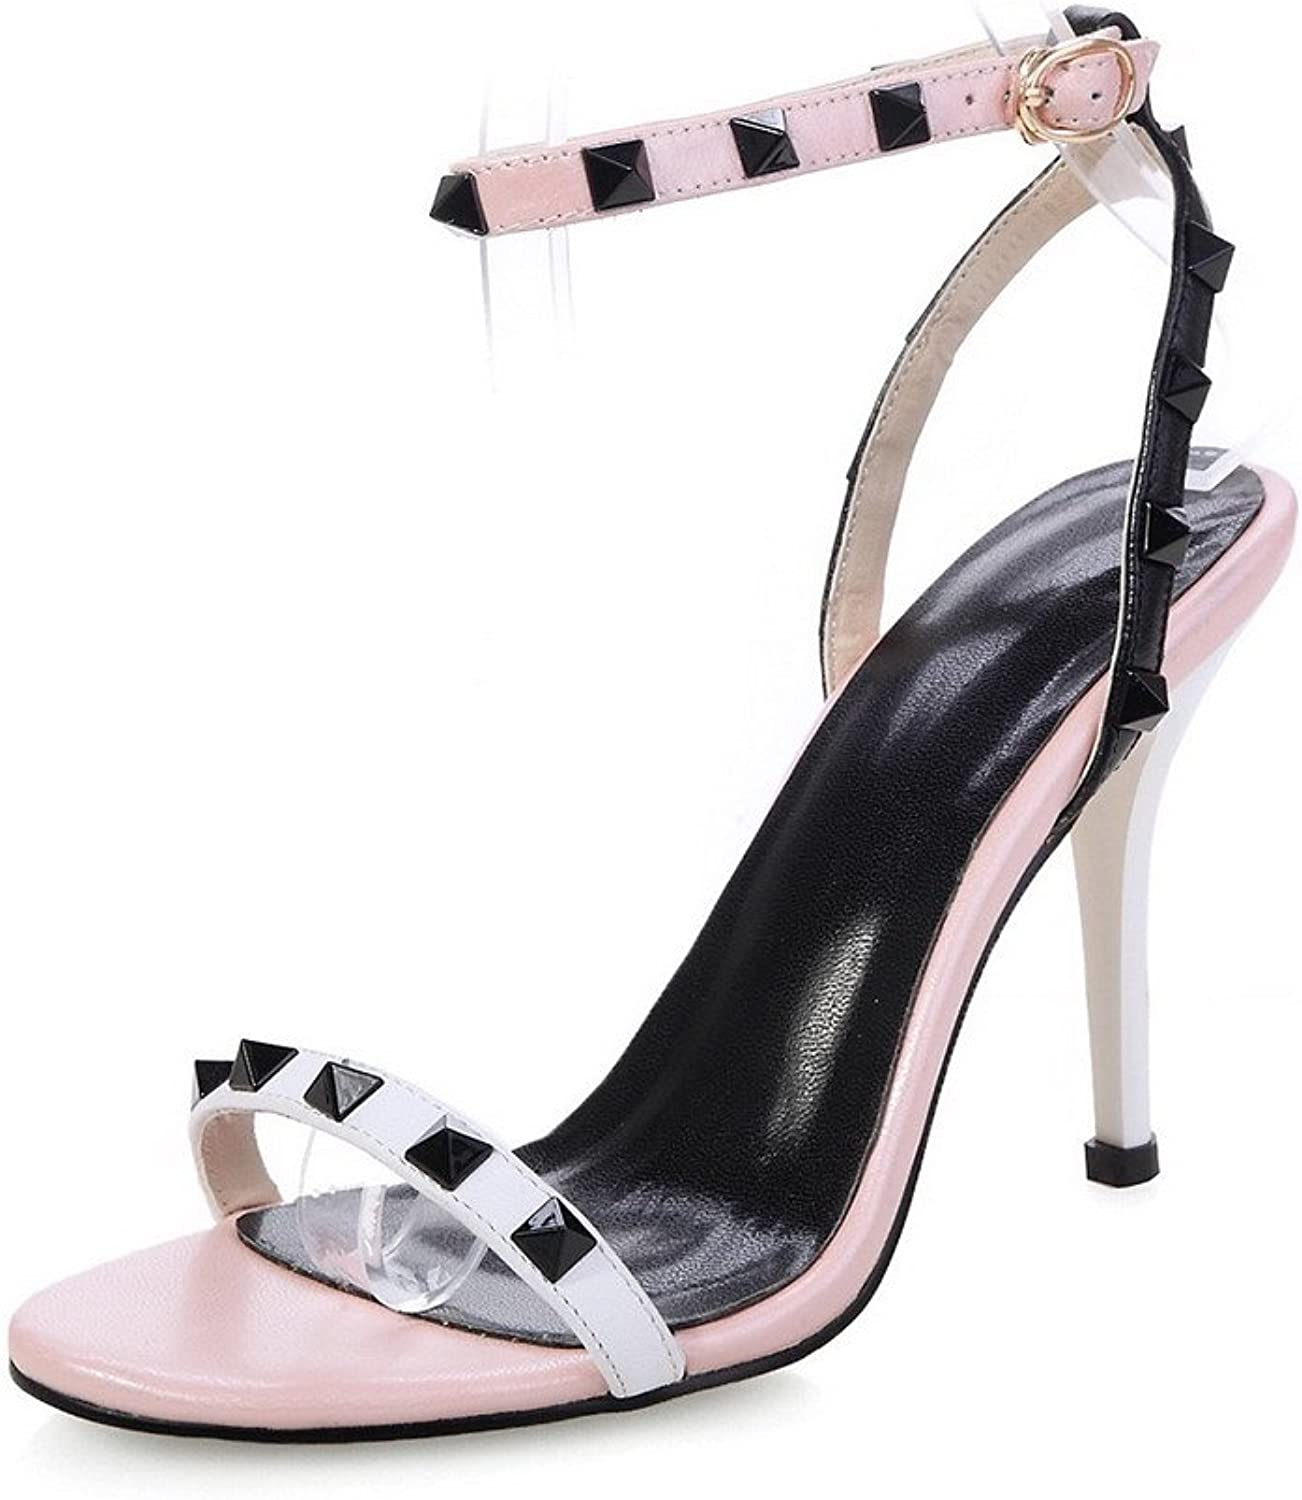 AmoonyFashion Women's Solid Cow Leather High-Heels Open Toe Buckle Sandals